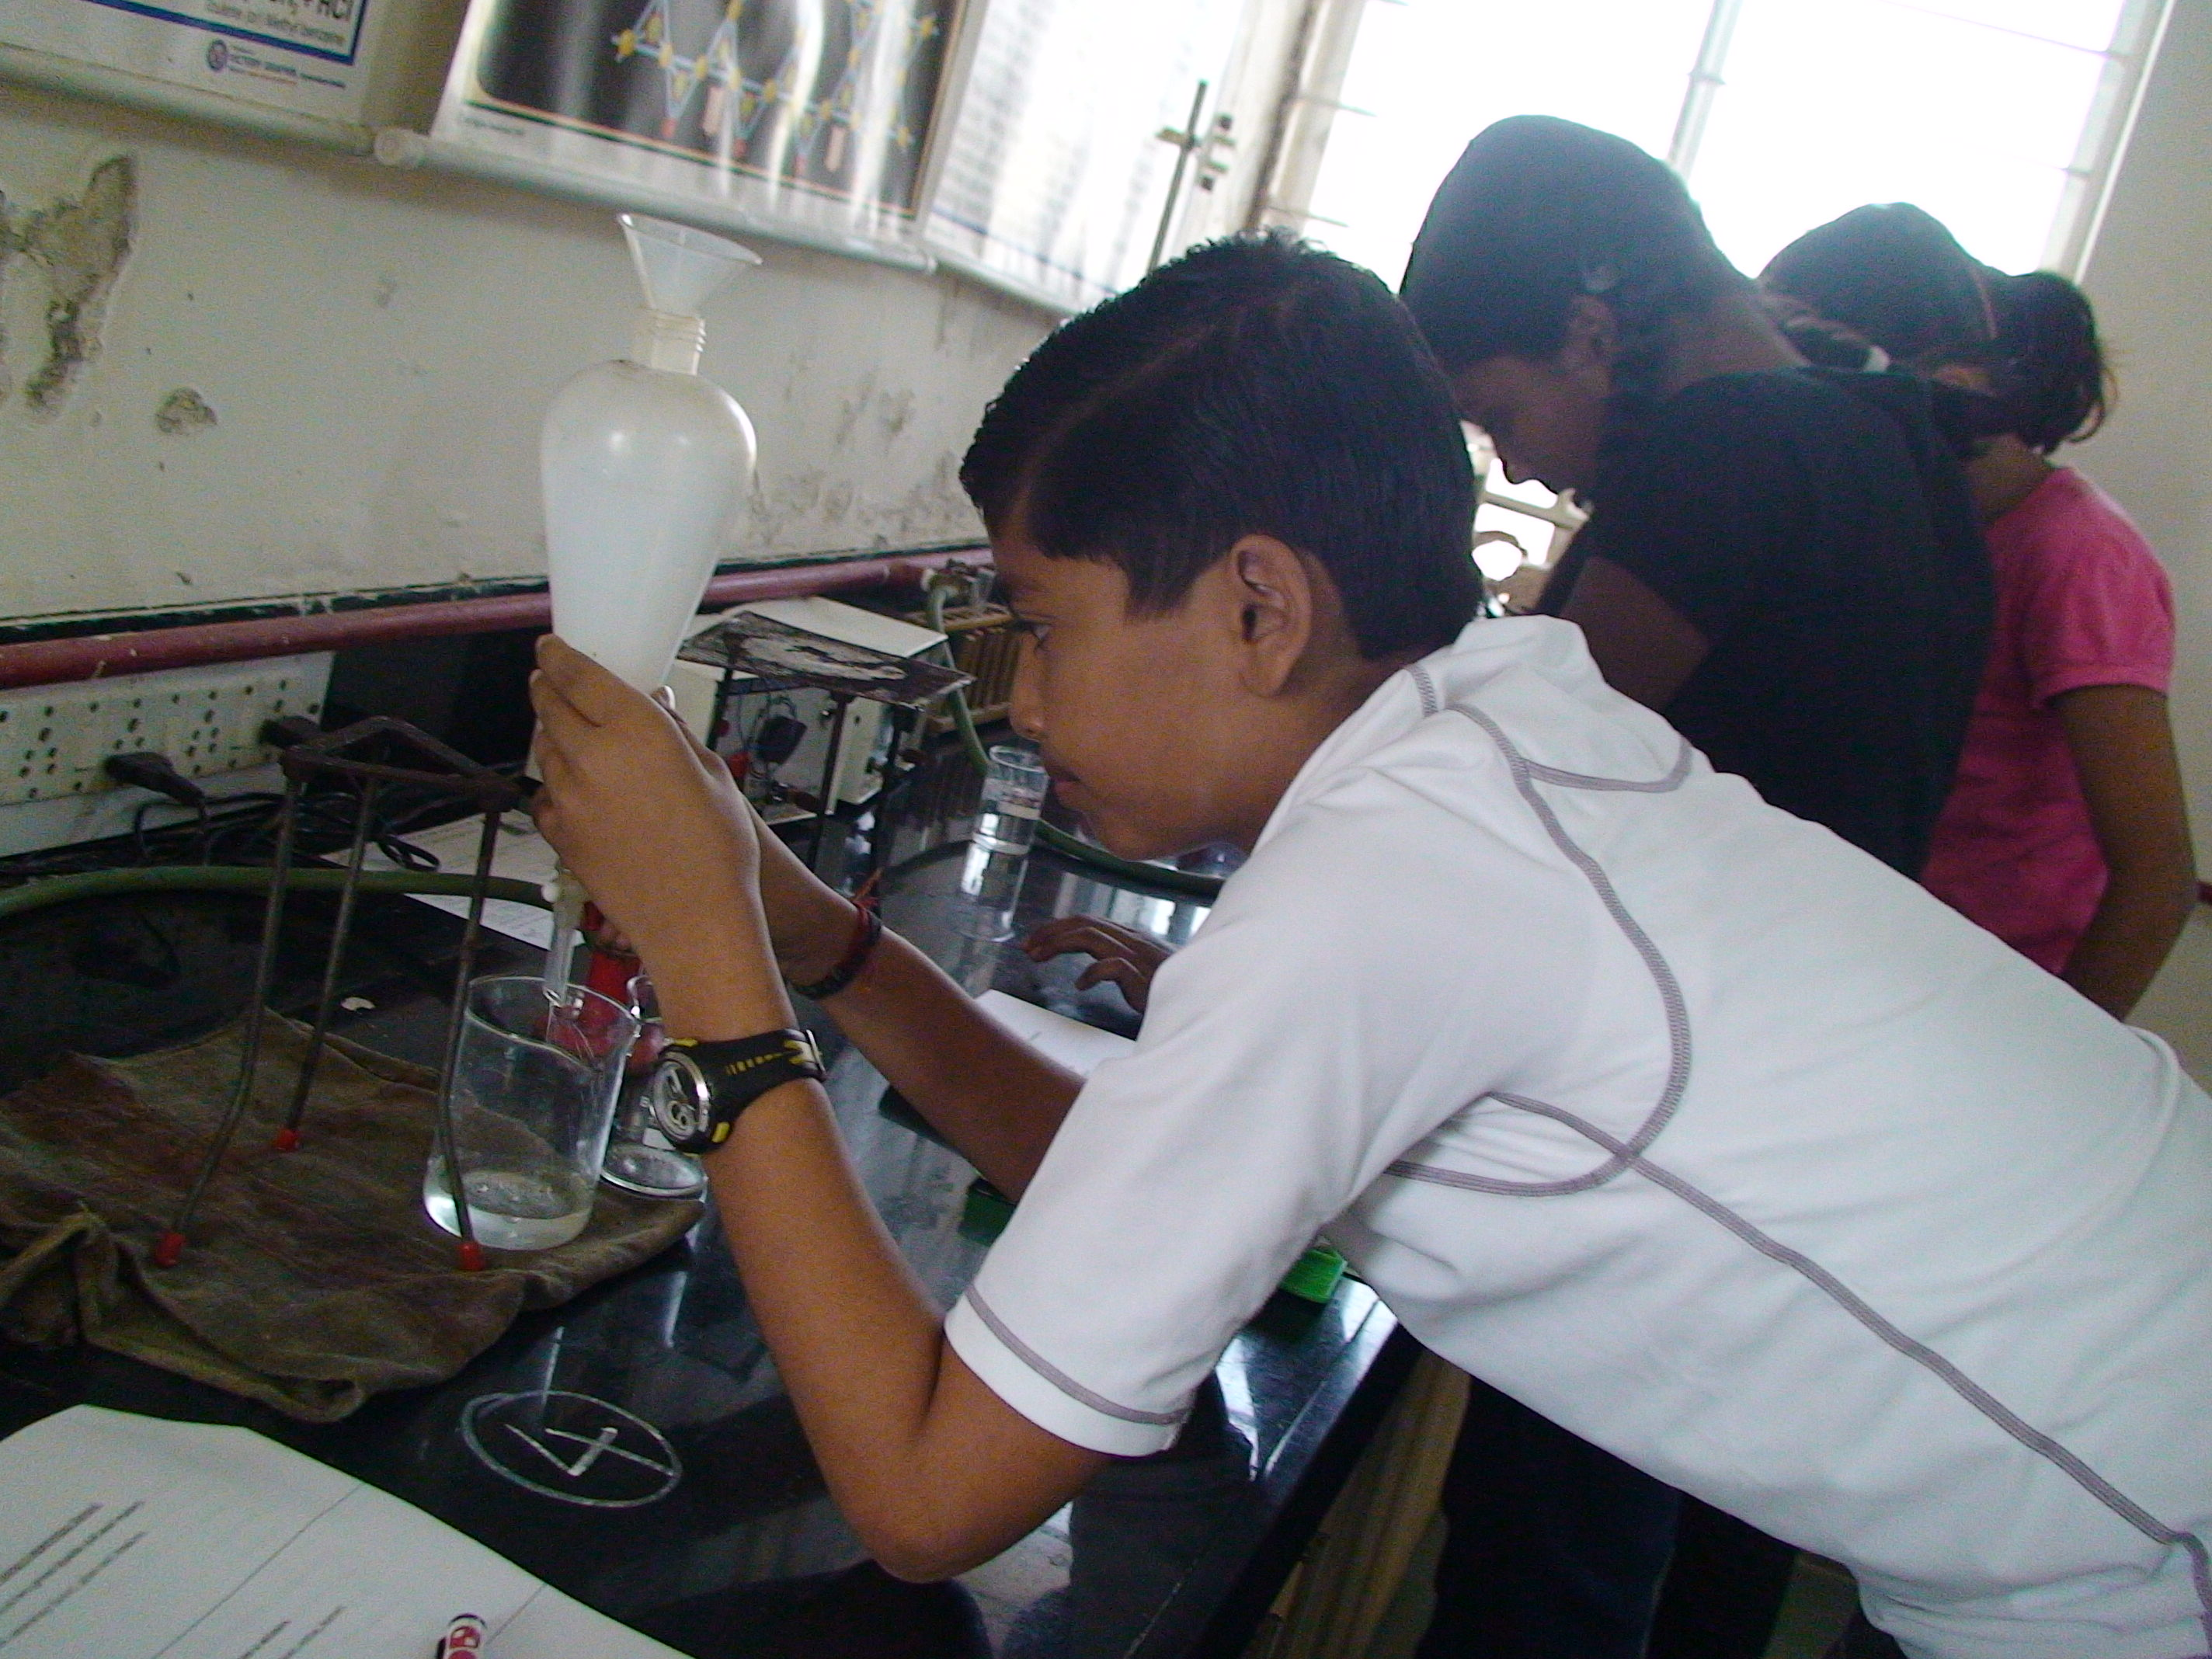 Homi Bhabha Young Scientist Examination-Guidance for Practicals